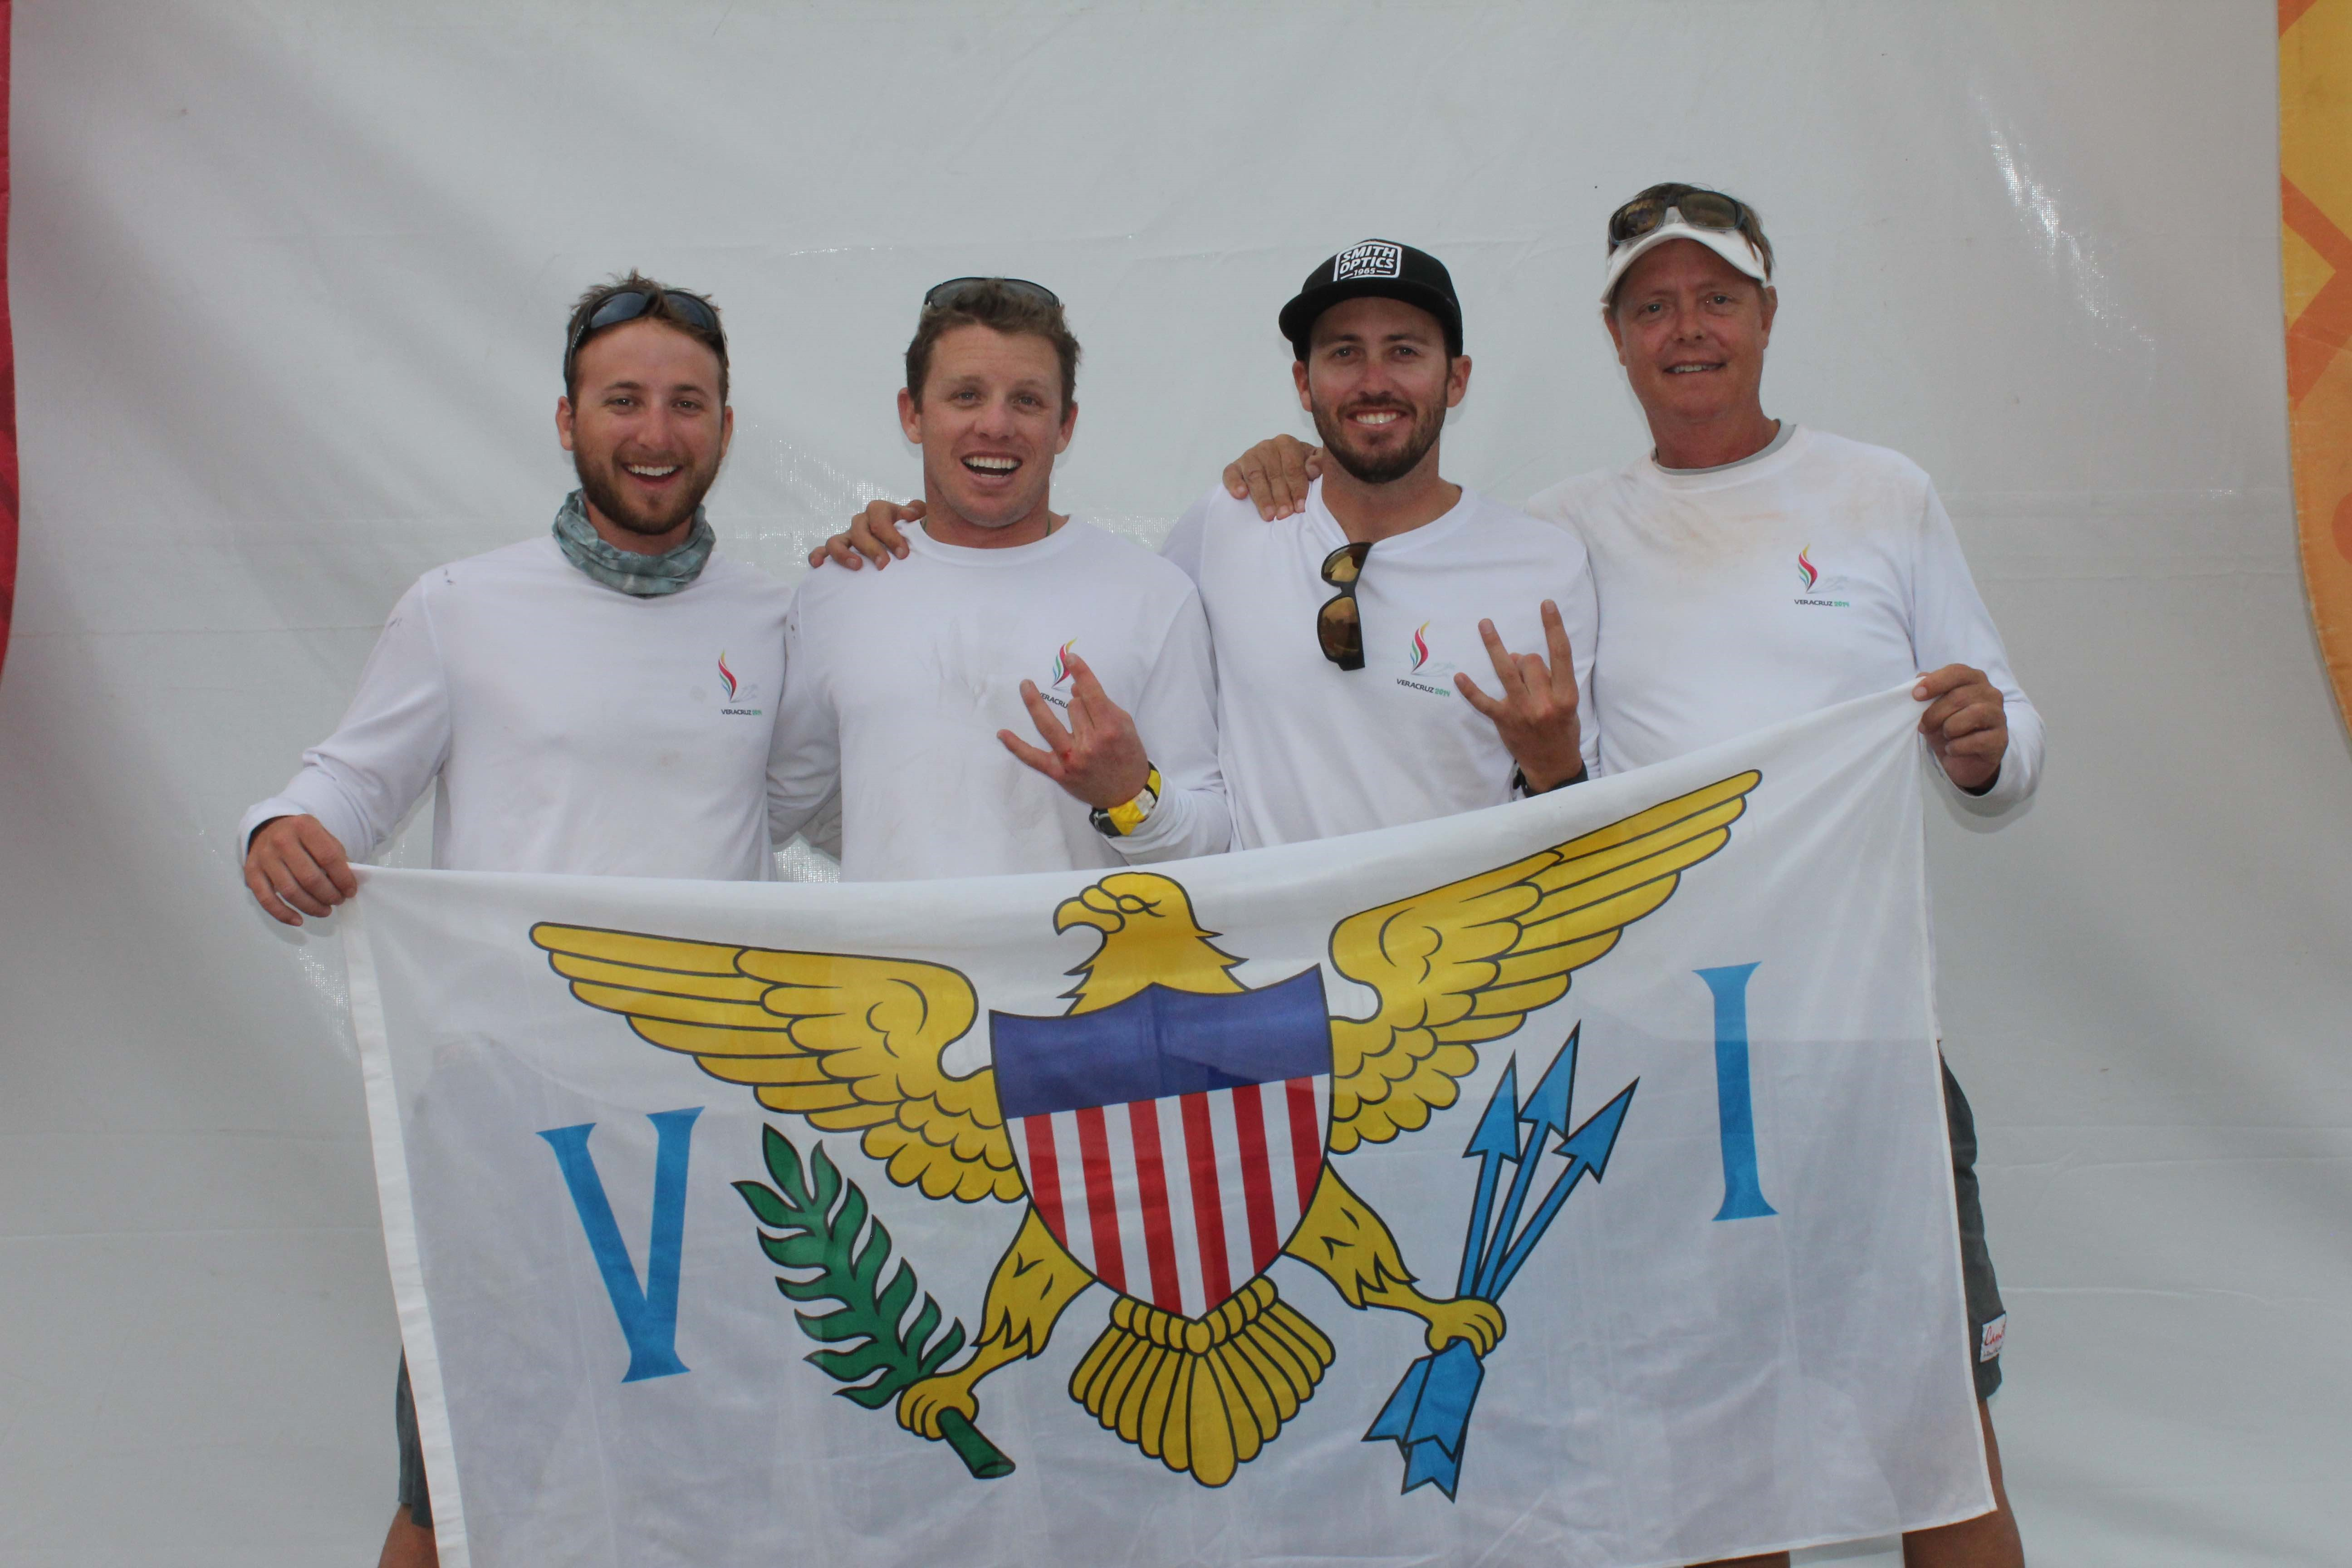 L to R Max Nickbarg, Addison Caproni, Taylor Canfield, Phillip Shannon at 2014 Central American and Caribbean Games (Credit Courtesy VISA)